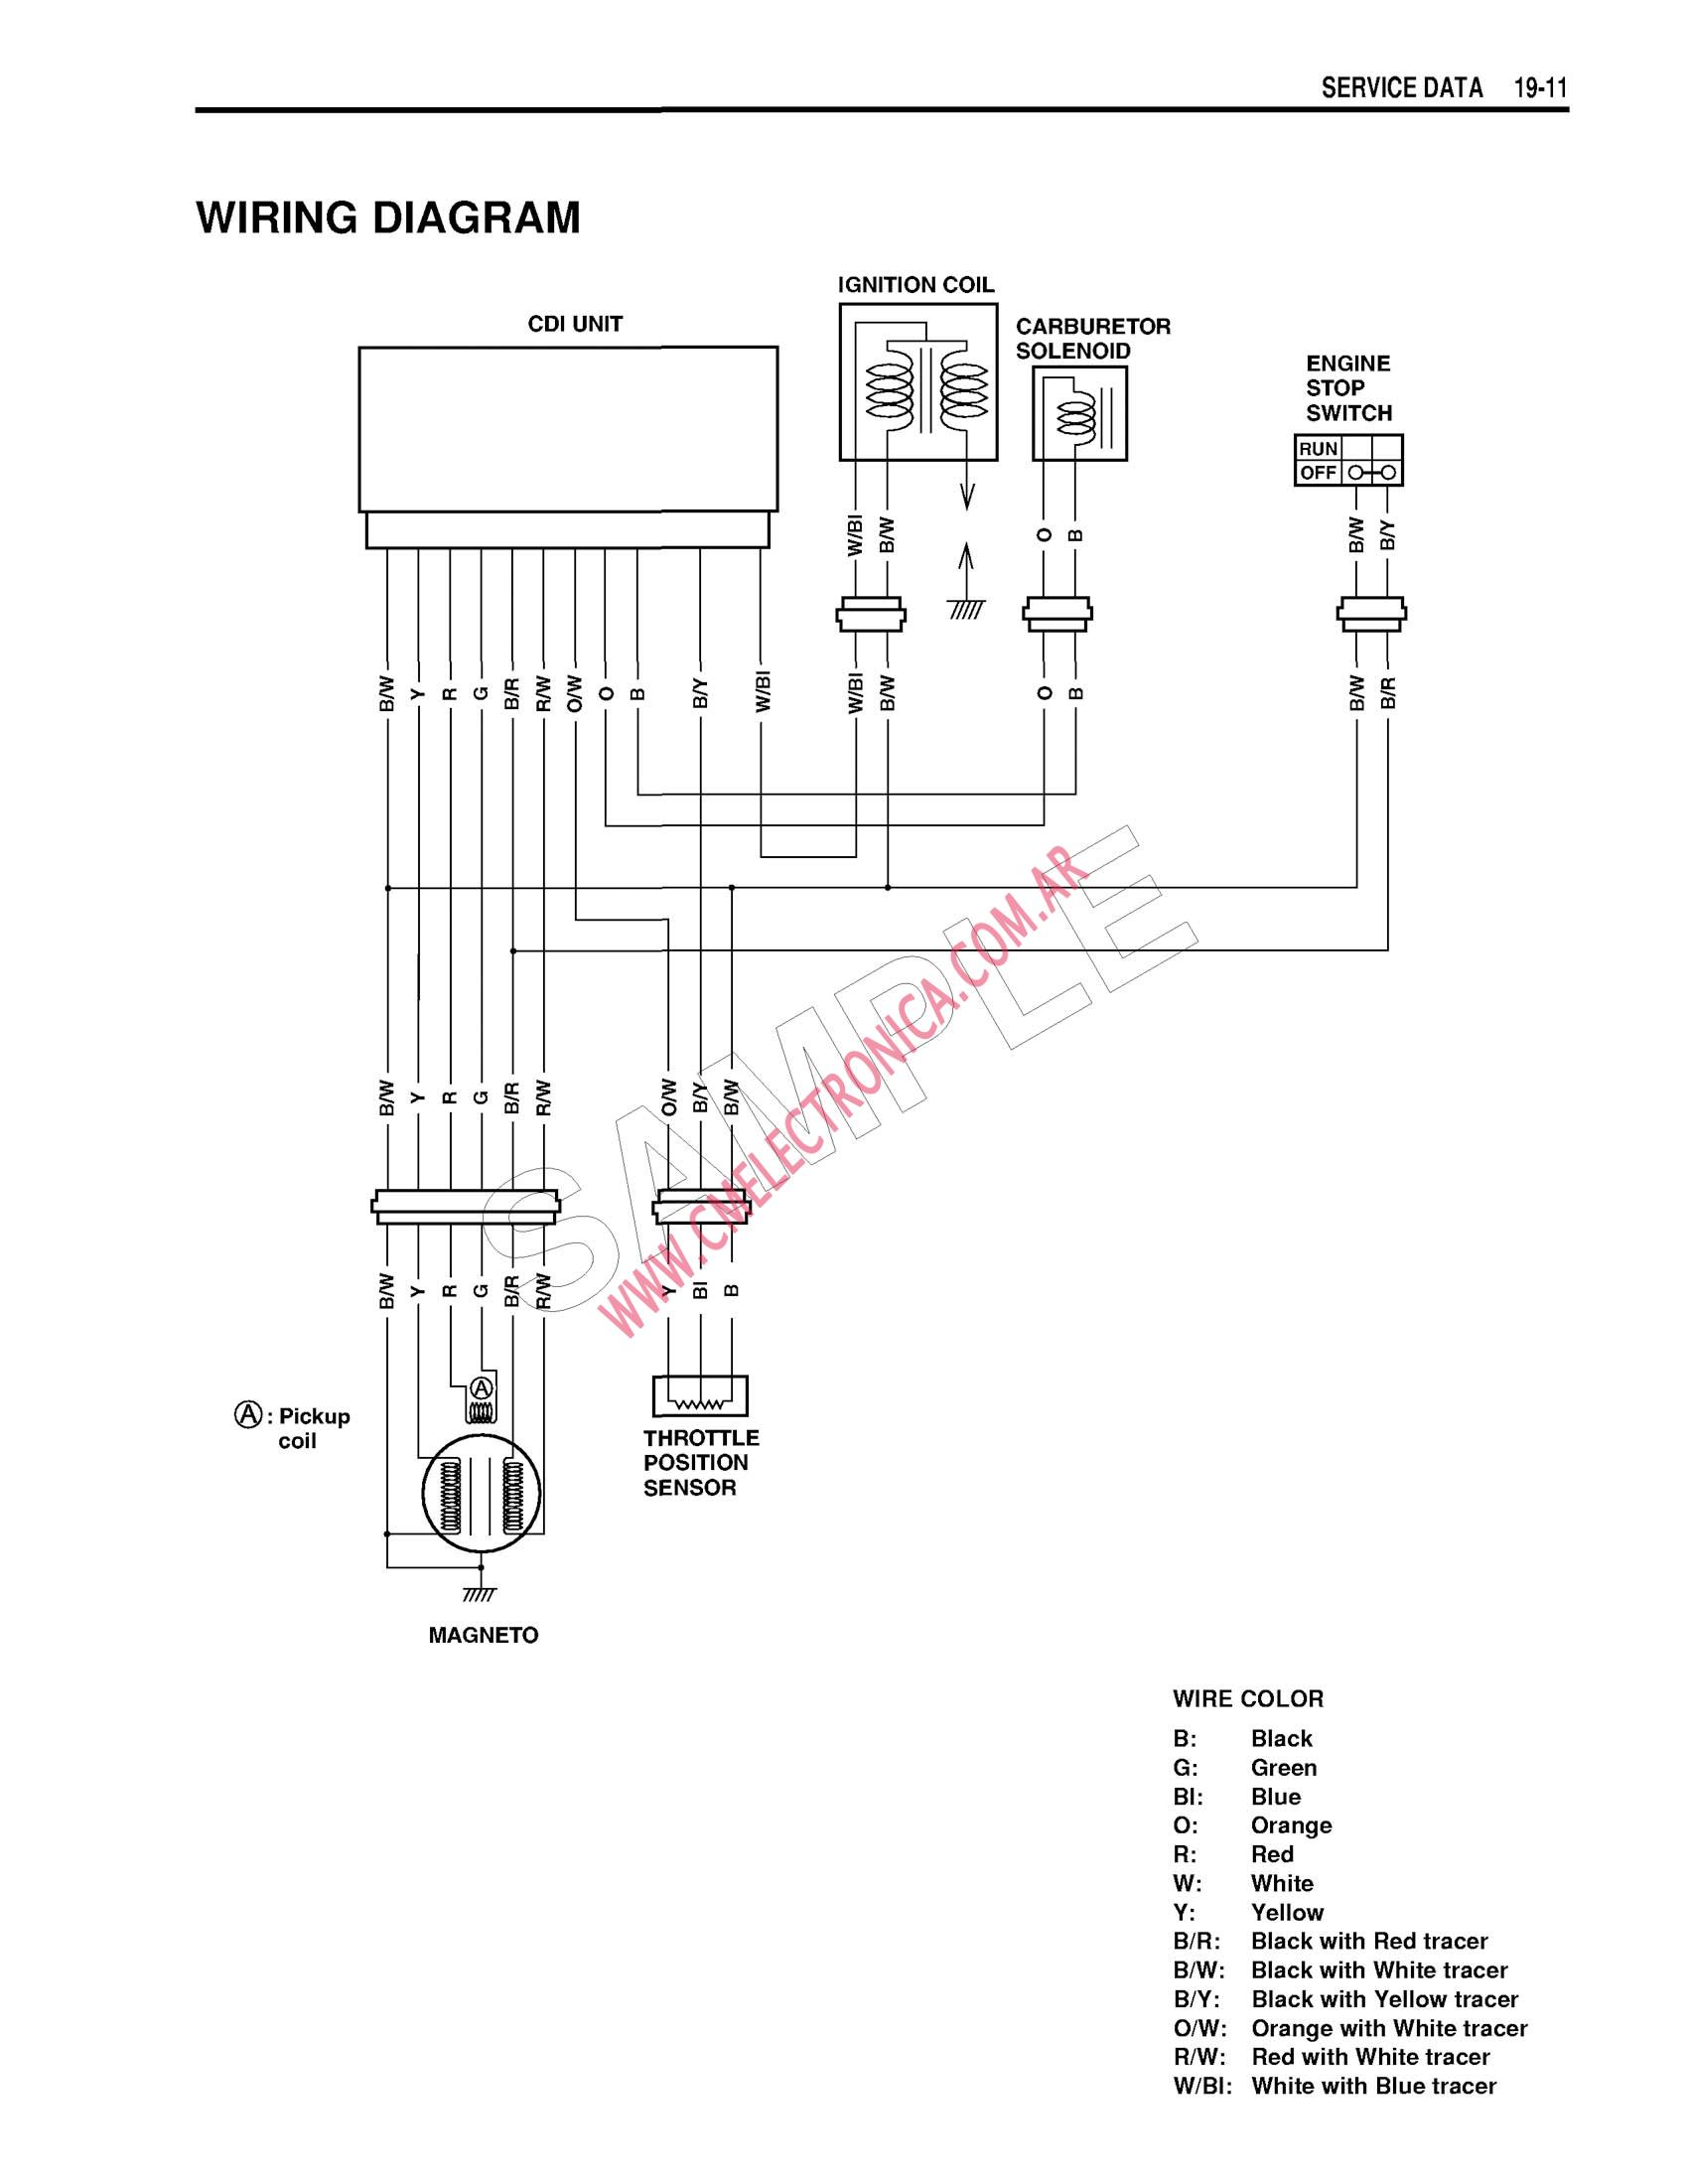 suzuki gs850 wiring diagram honda cx500 wiring diagram